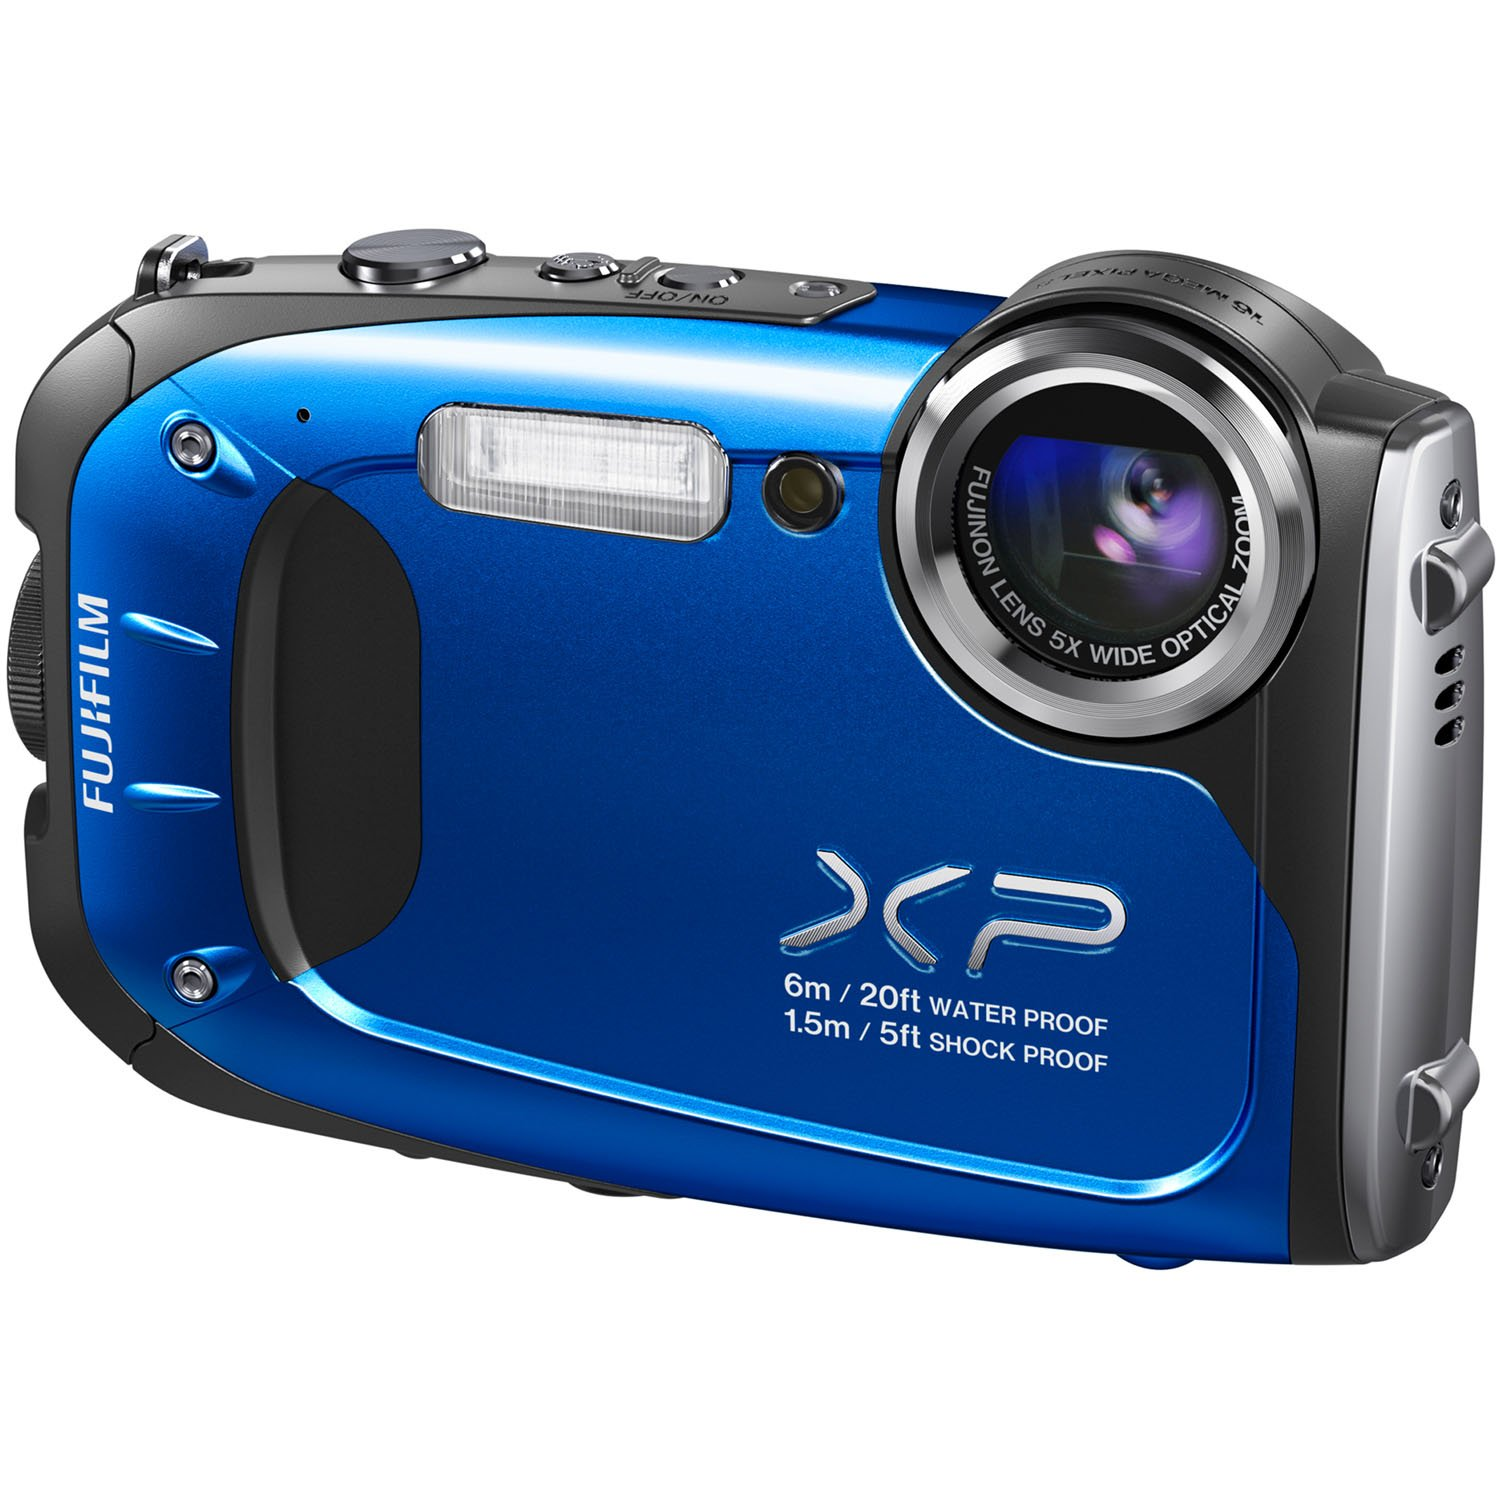 Fujifilm FinePix XP60 16.4MP Digital Camera with 2.7-Inch LCD (Blue) (Discontinued by Manufacturer) by Fujifilm (Image #2)